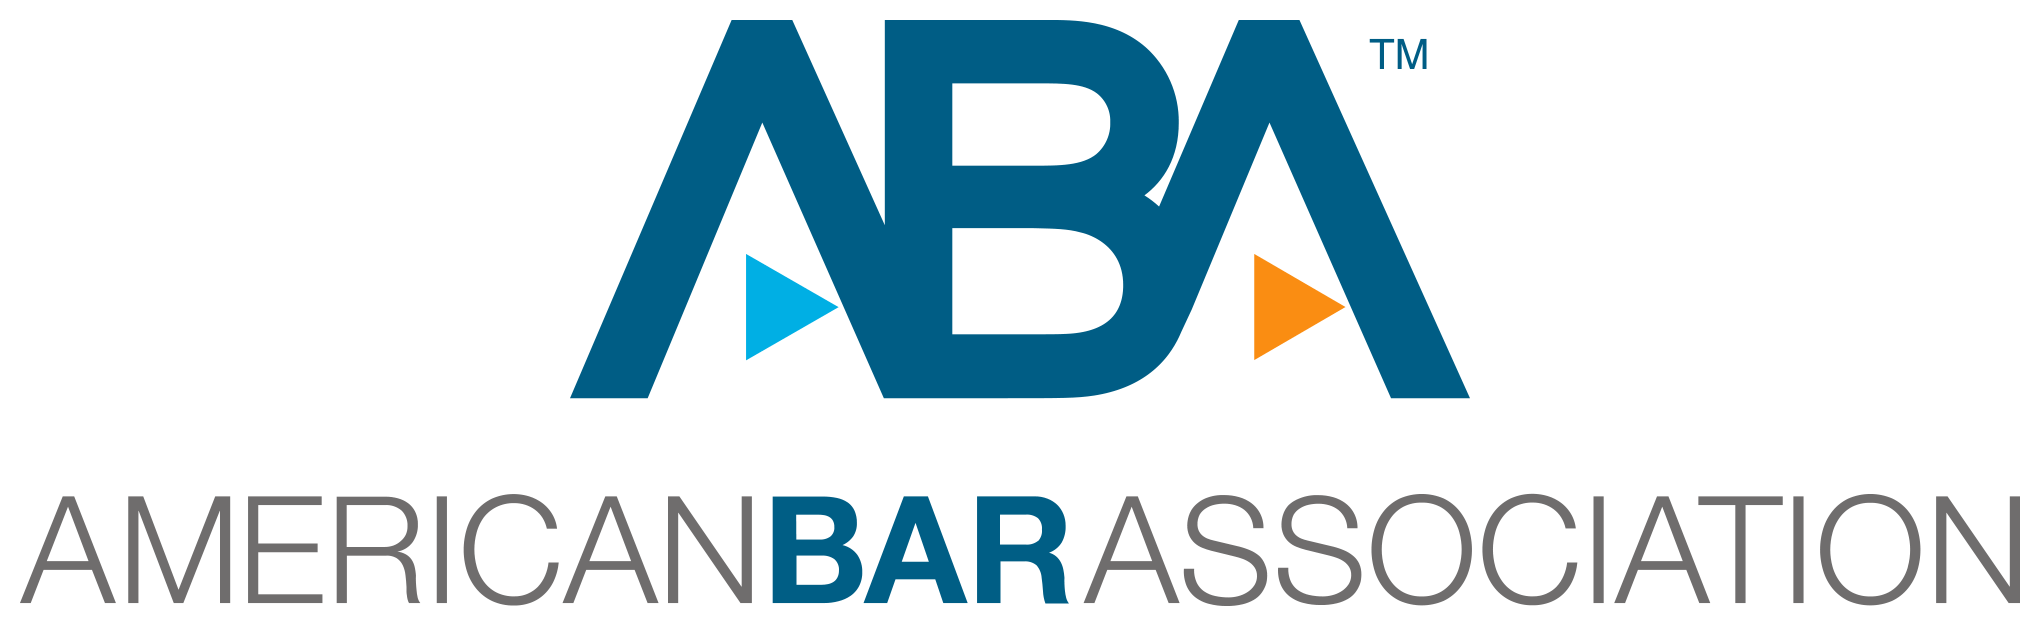 american_bar_association_logo.png